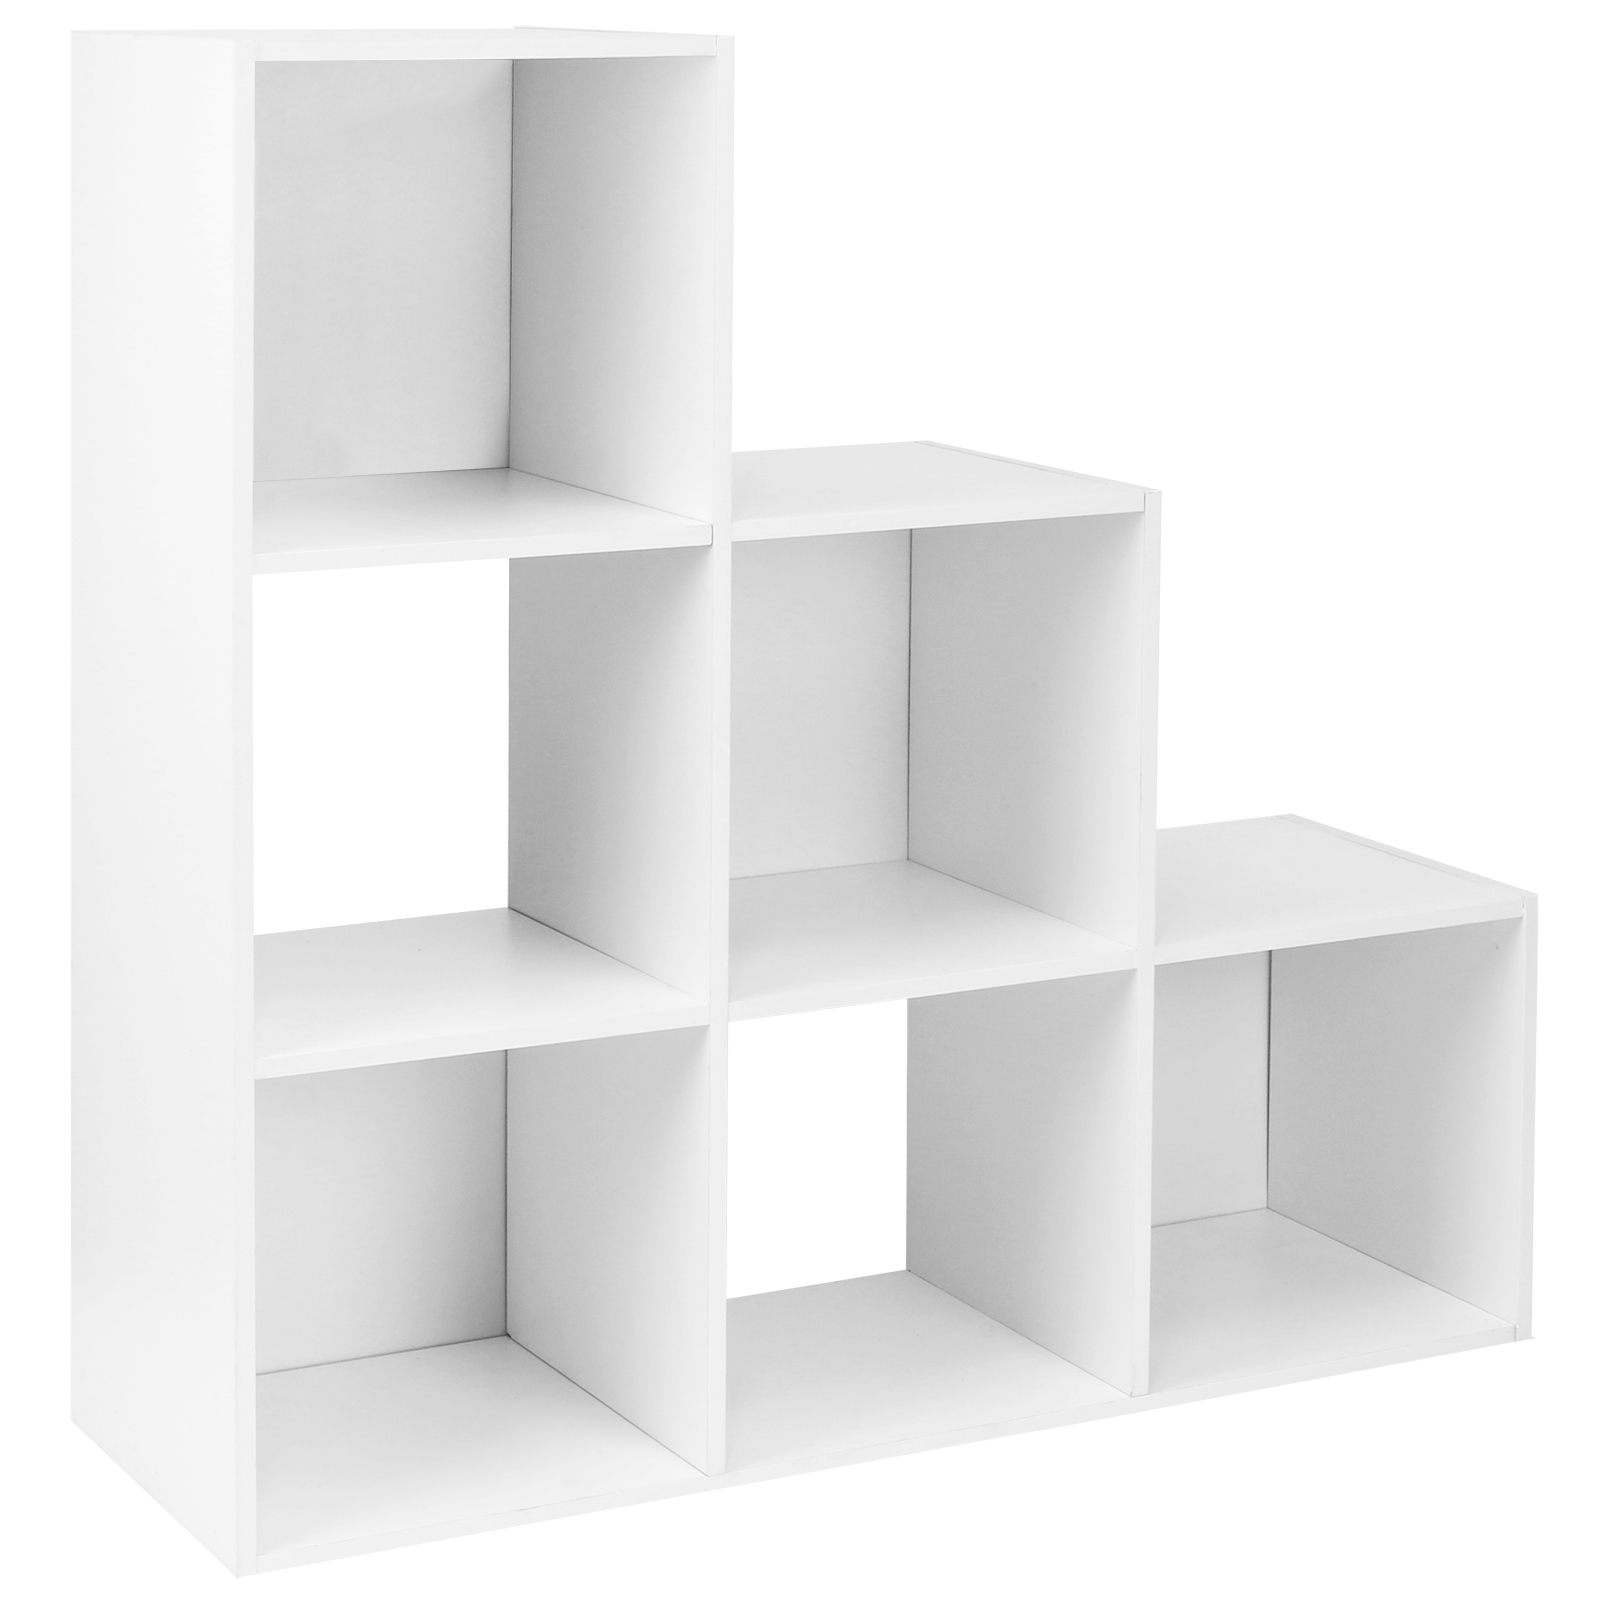 Charmant Sentinel HARTLEYS WHITE 6 CUBE MODULAR SQUARE STORAGE/SHELVING 3 TIER SHELF  DISPLAY UNIT